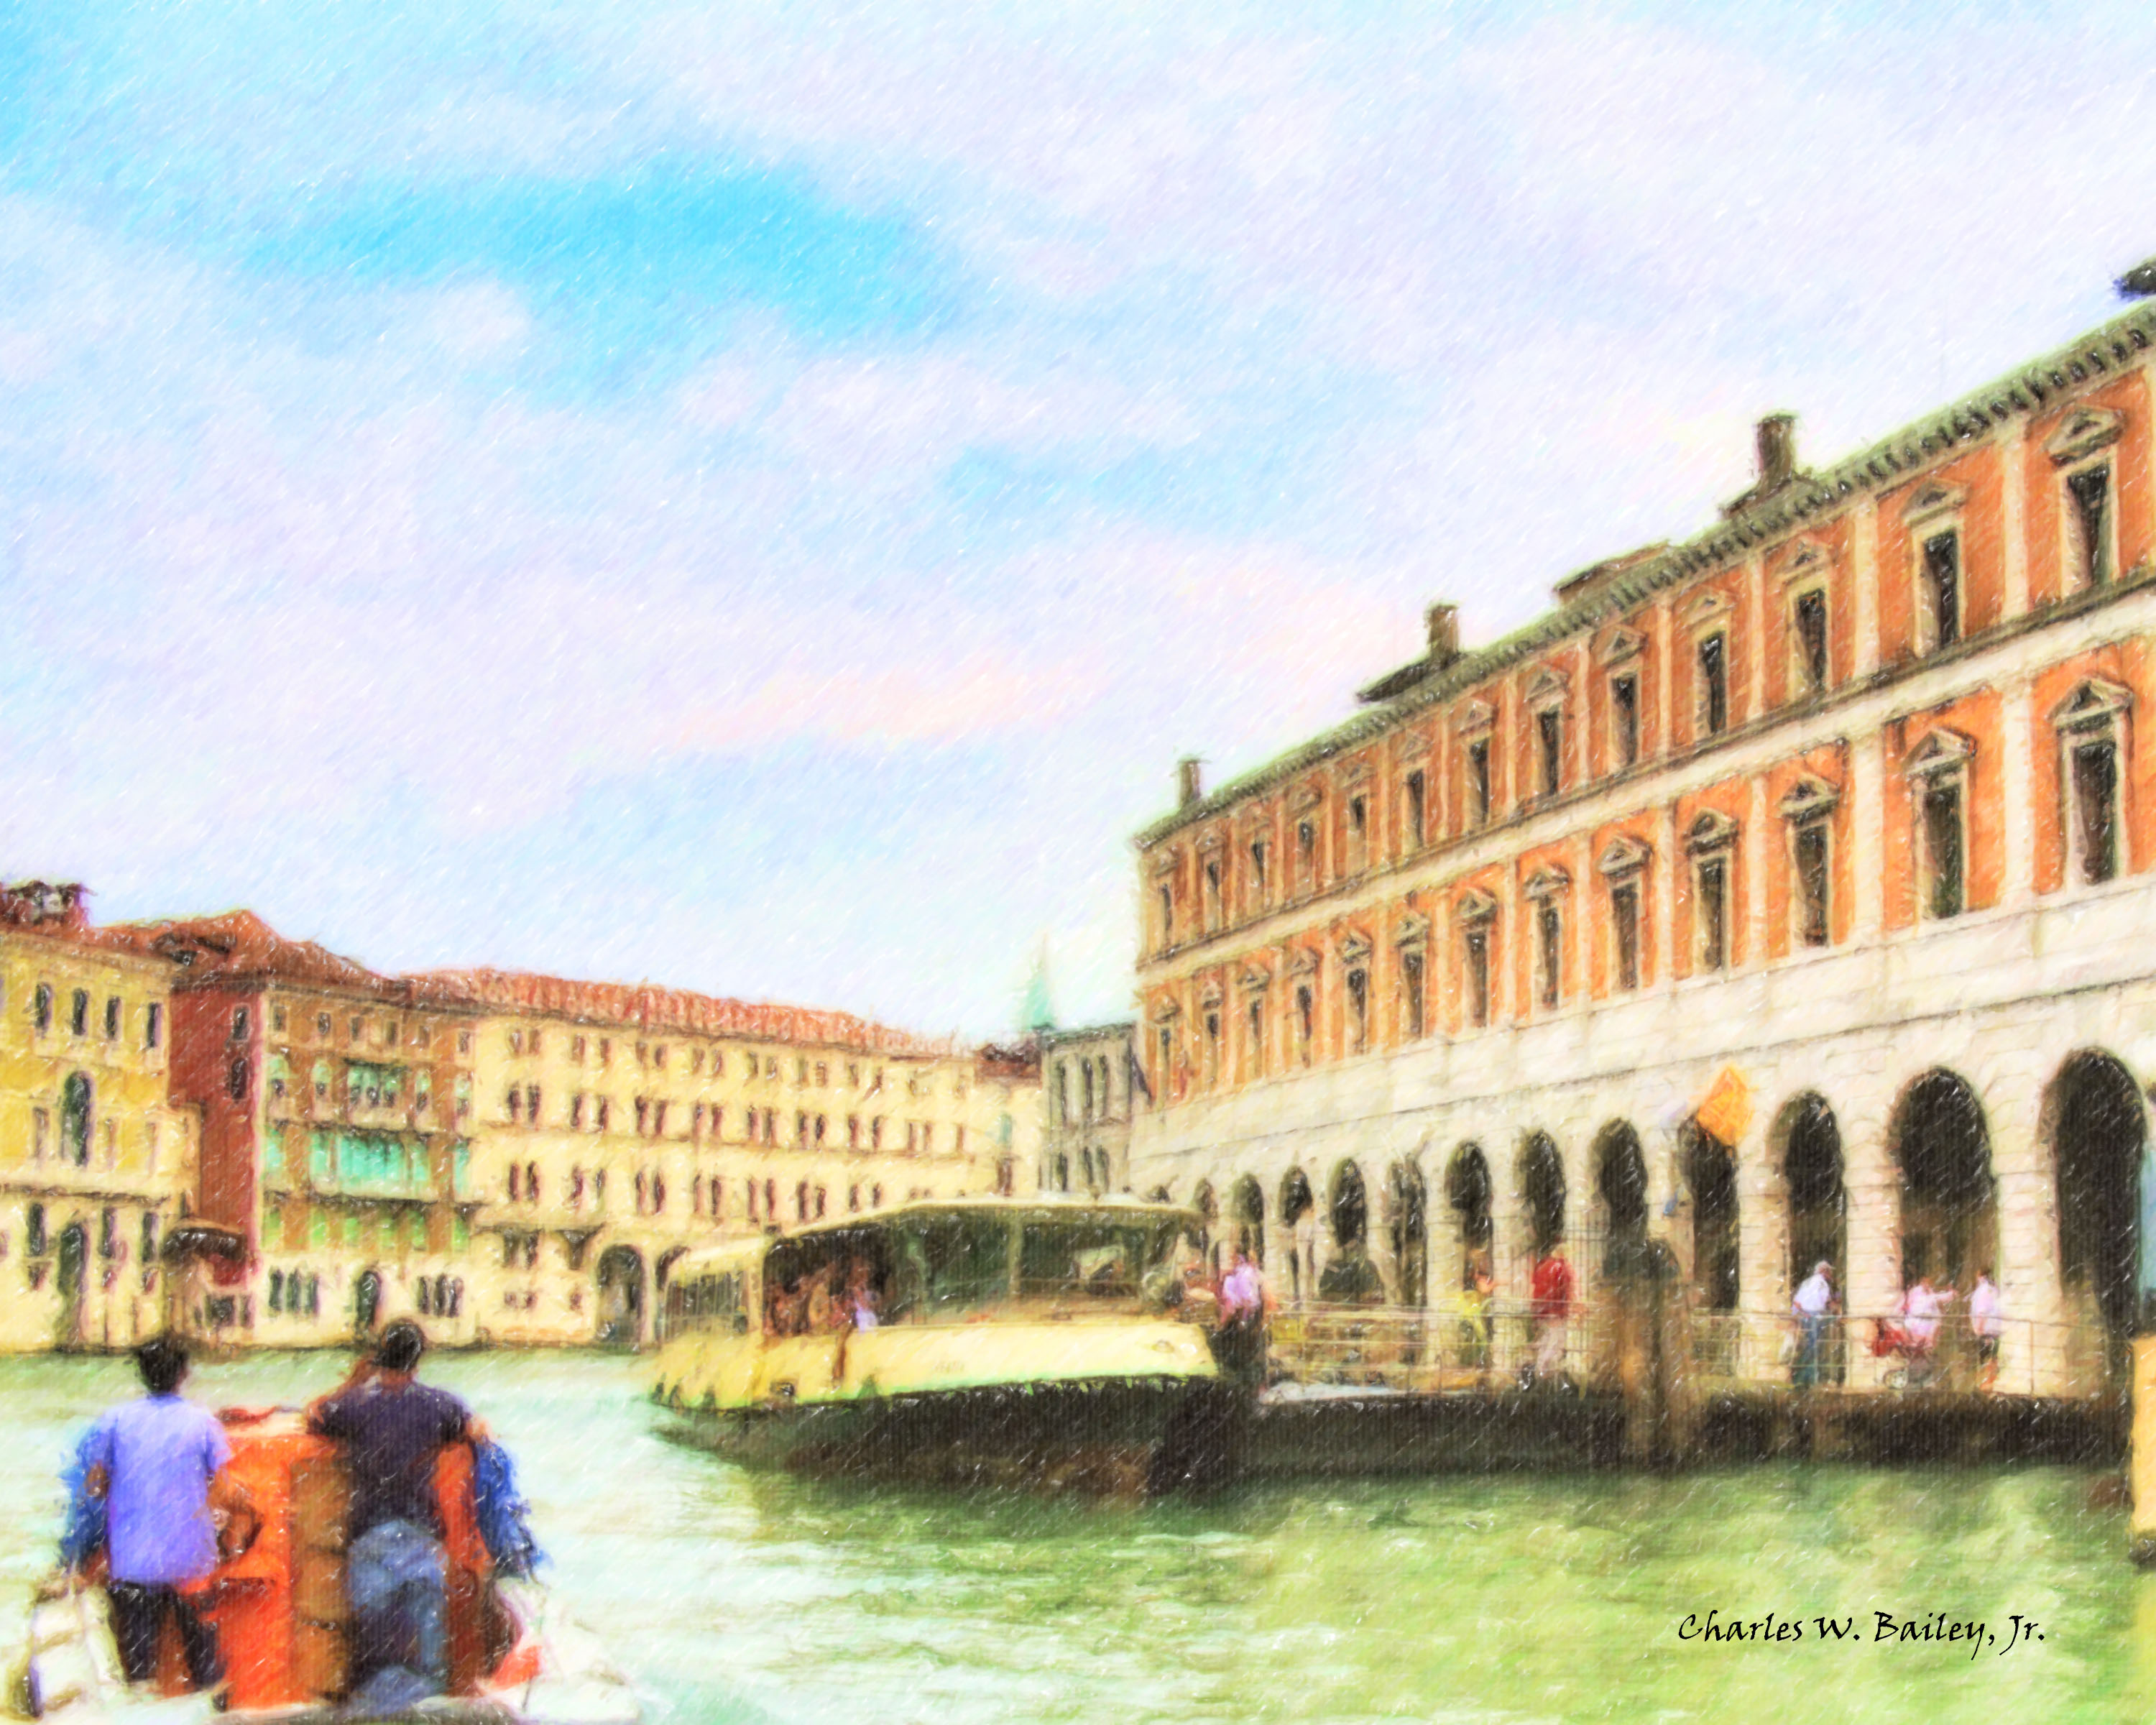 Digital Color Pencil Drawing Of A Vaporetto On The Grand Canal In Venice